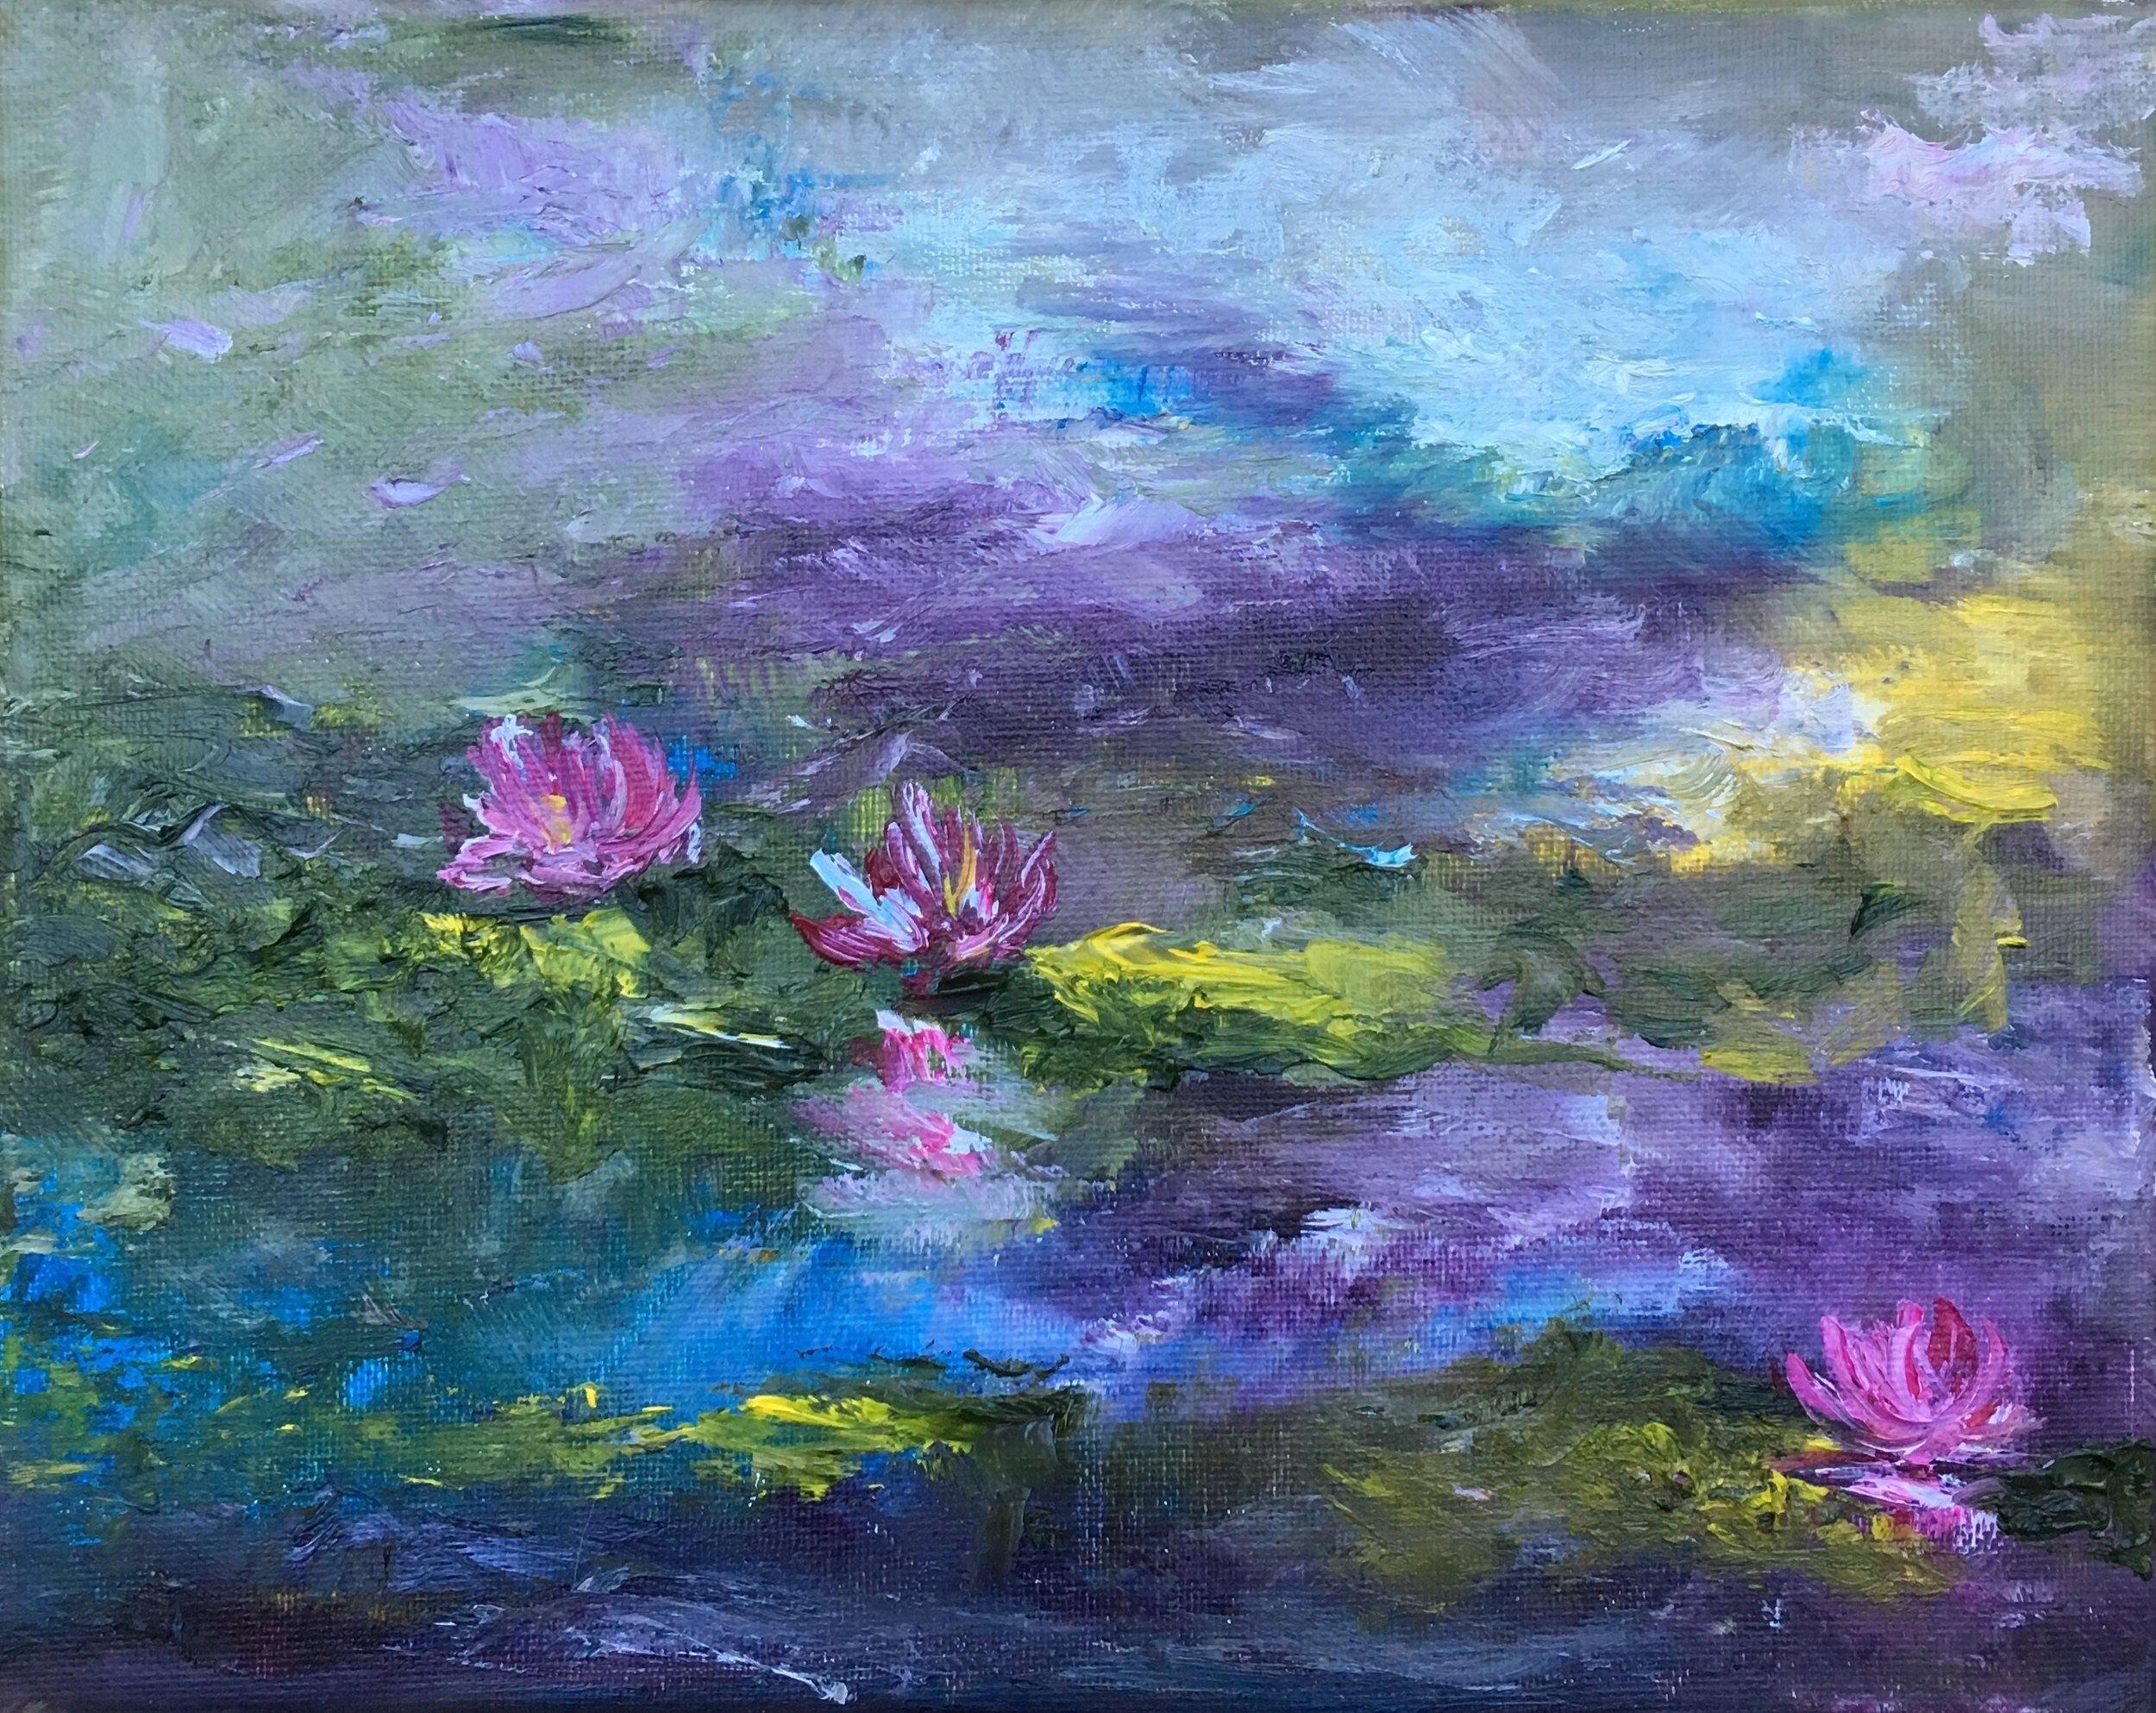 Waterlilies in the Evening Light